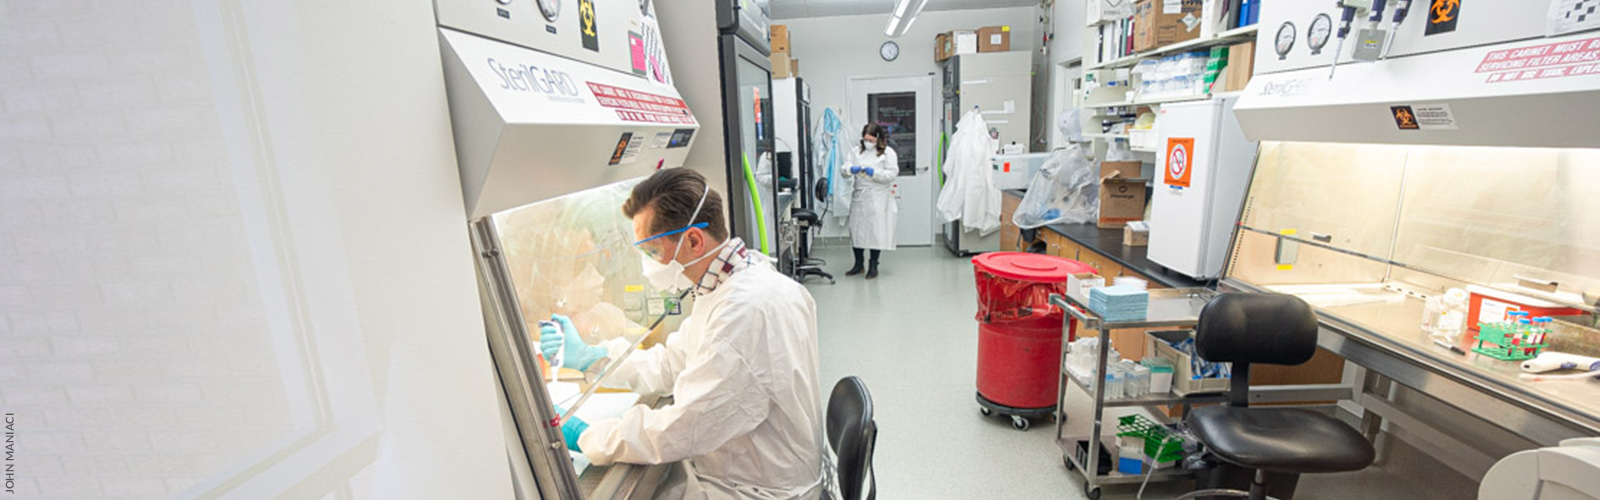 Researchers working on COVID-19 test kits at the State Lab of Hygiene (Photo by John Maniaci)